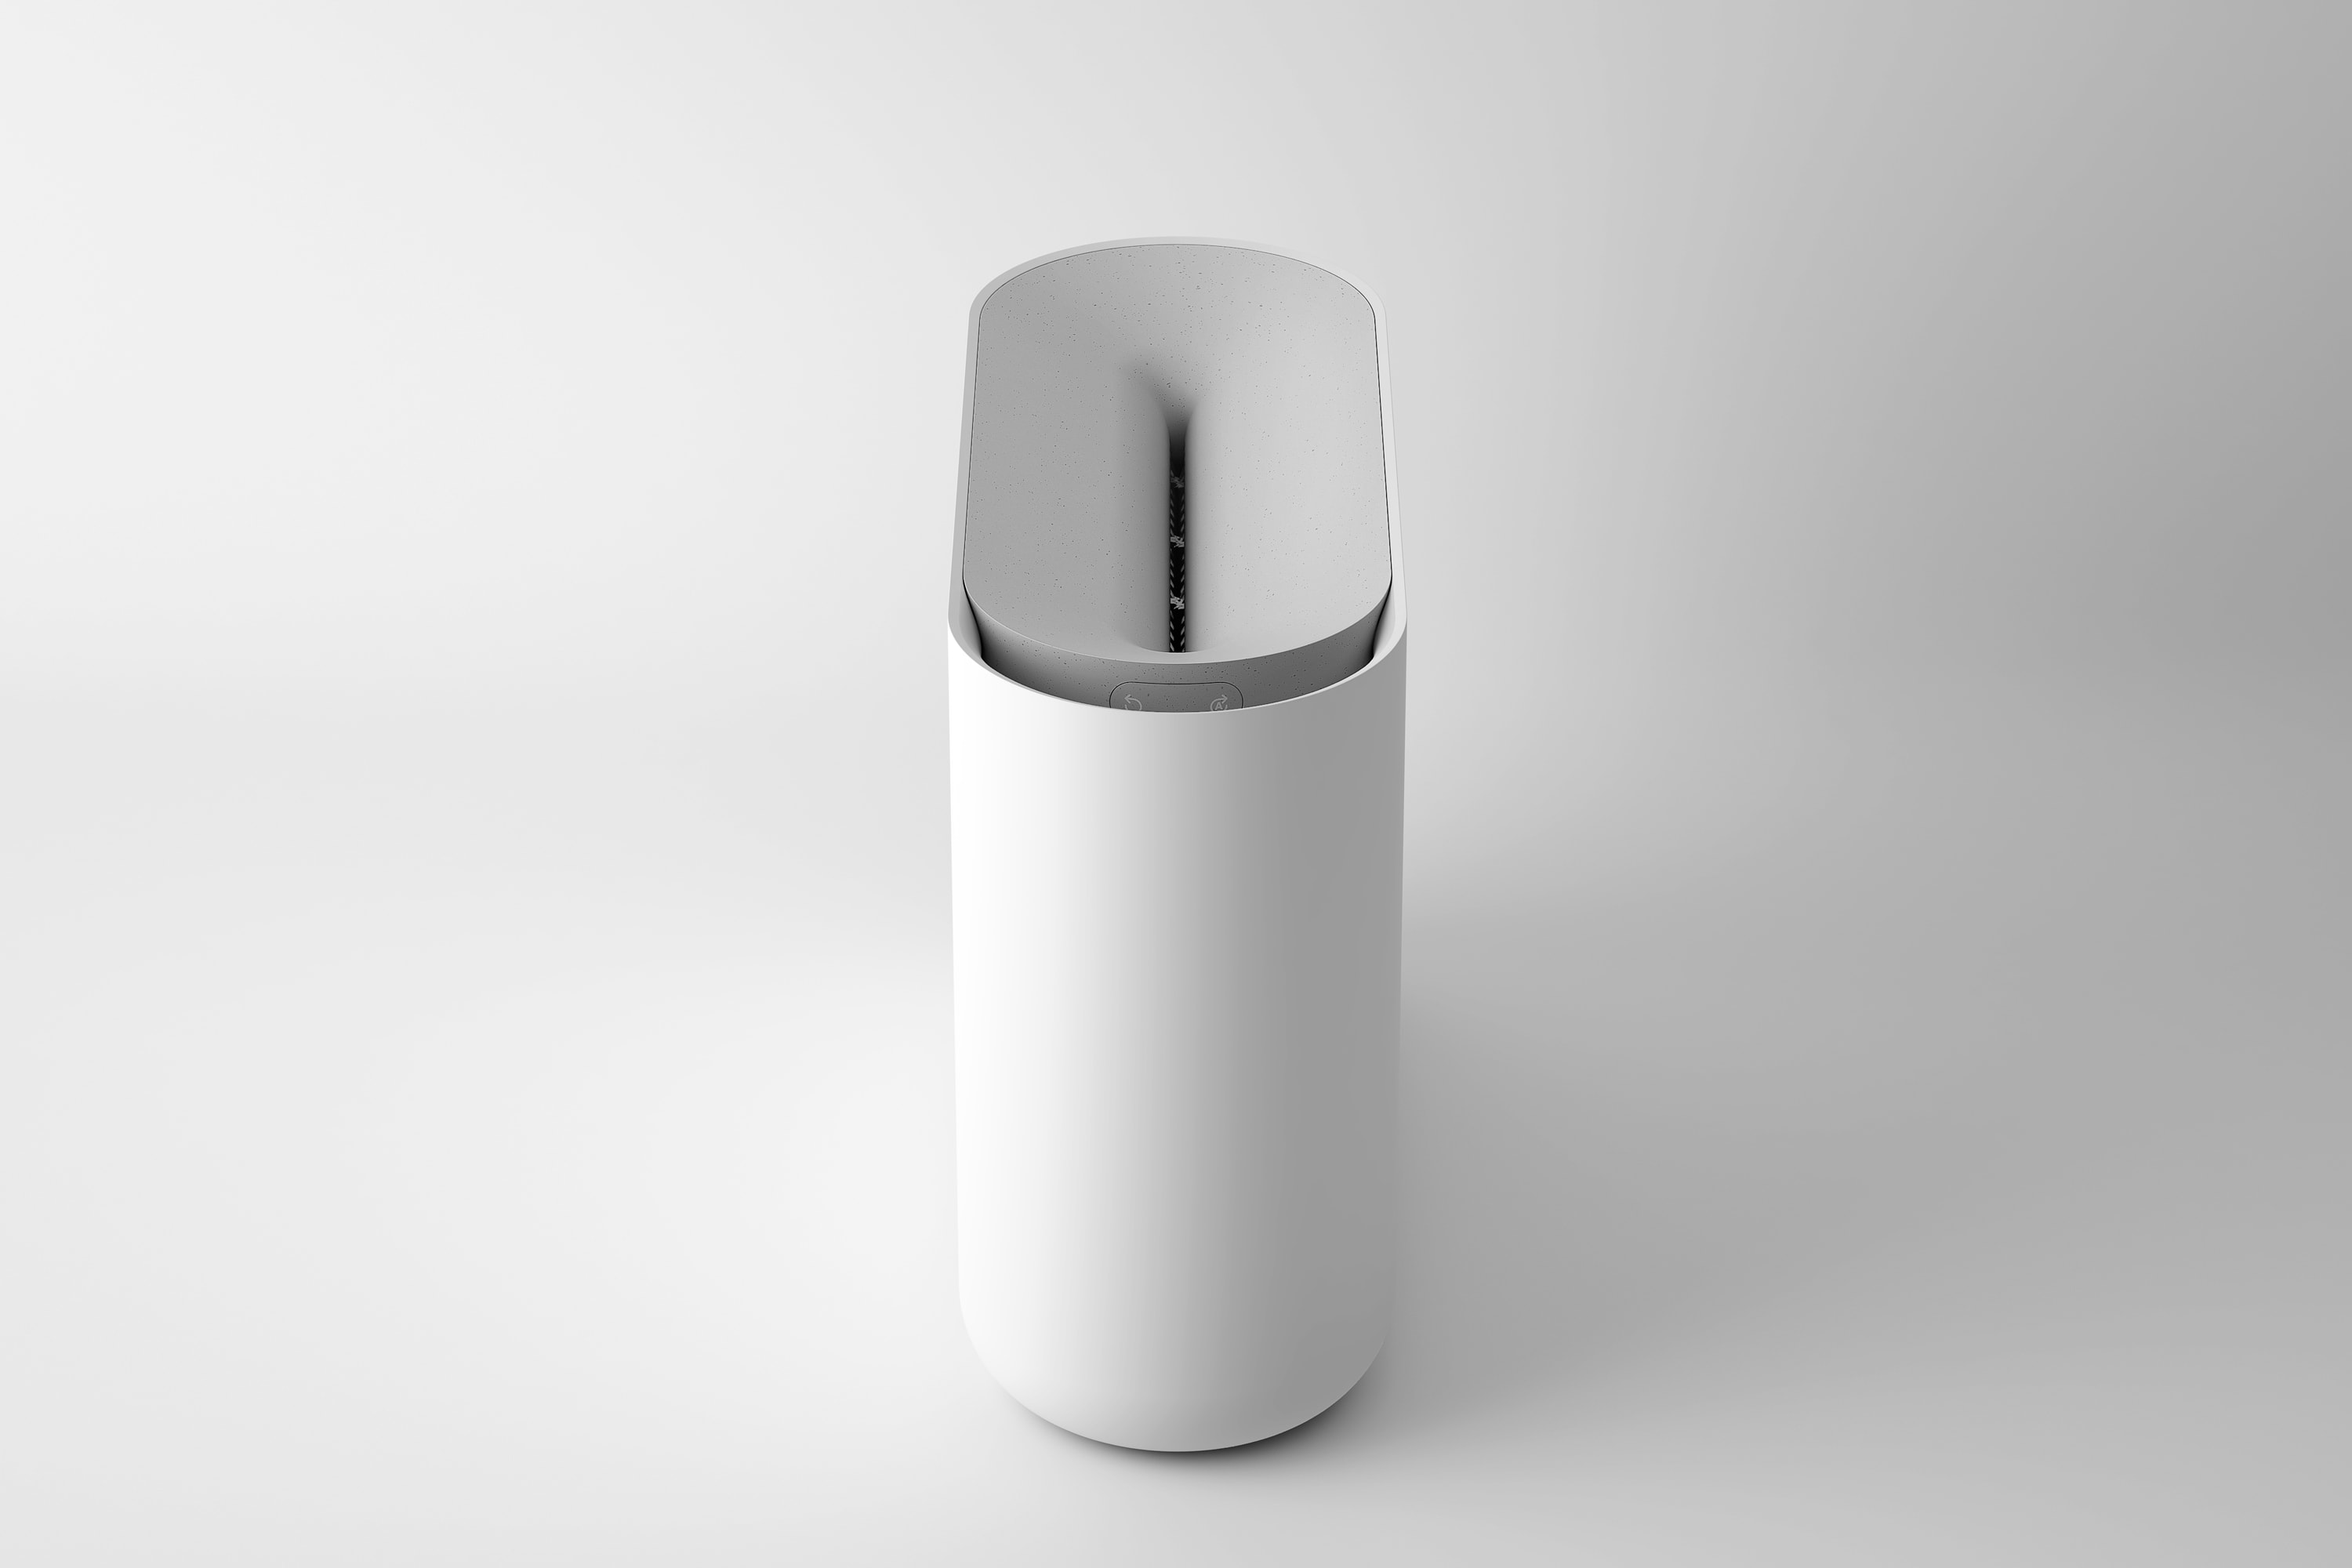 Blond-Industrial-Product-Design-Agency-Studio-London-Paper-Shredder-05